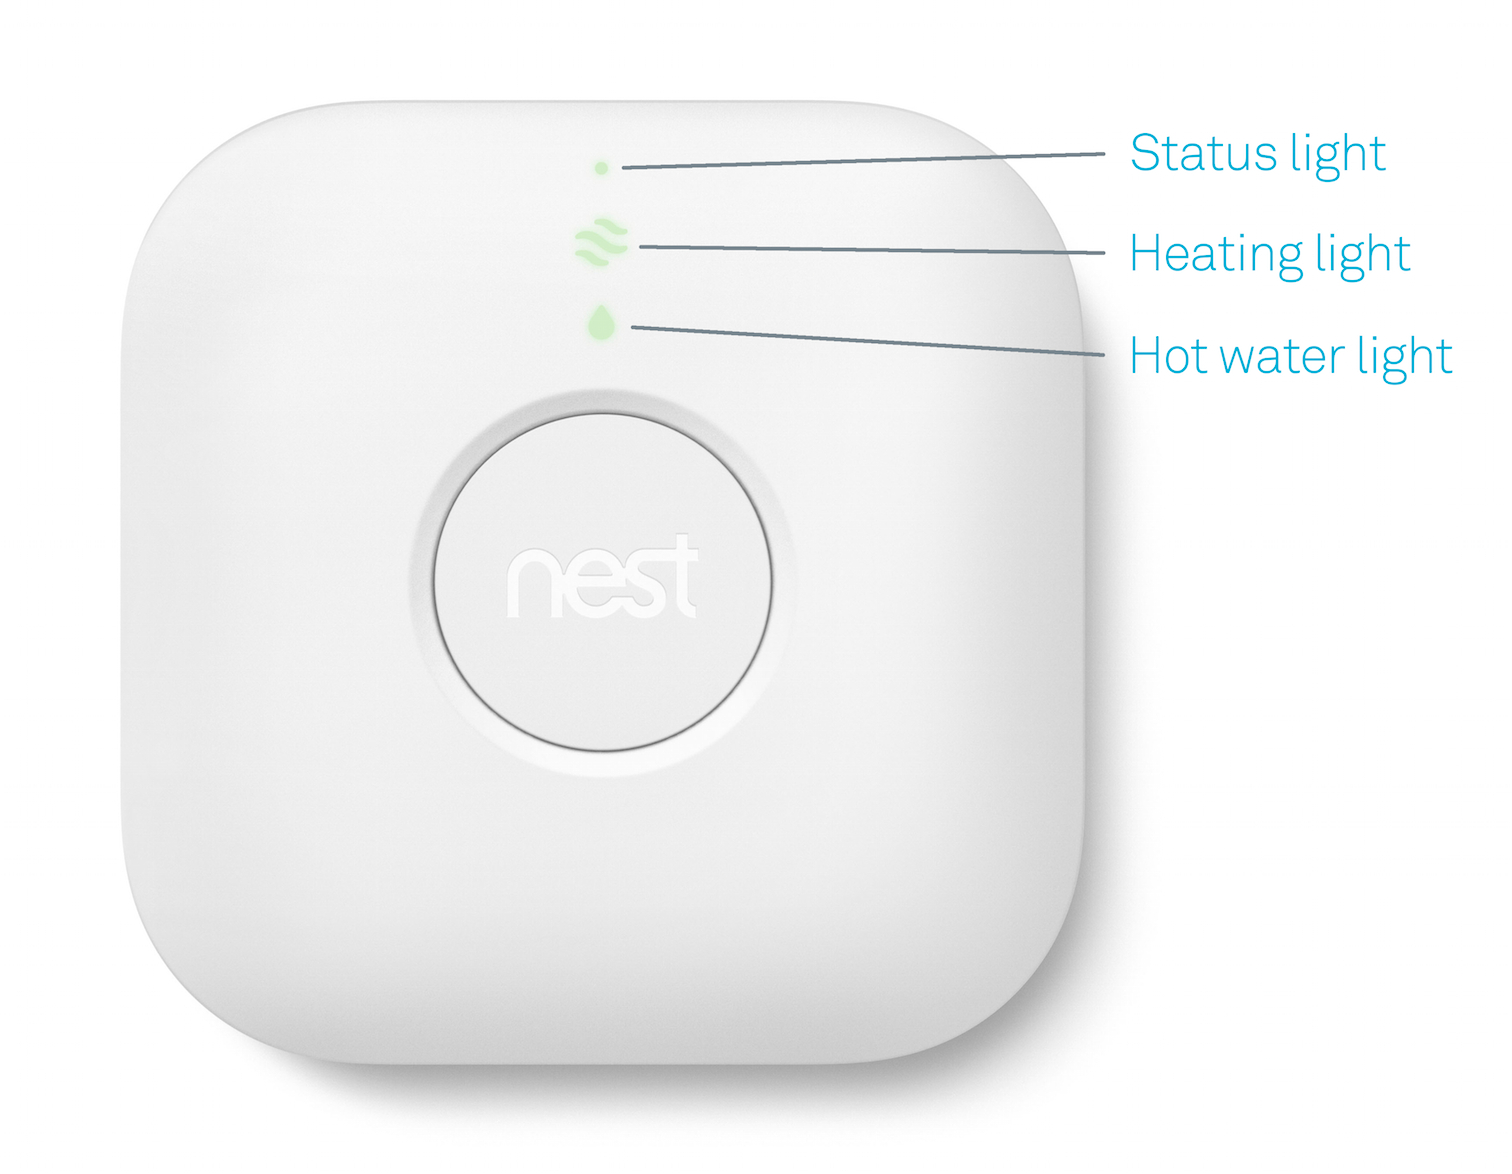 Learn About The Lights On Heat Link And What They Mean - Nest Heat Link E Wiring Diagram